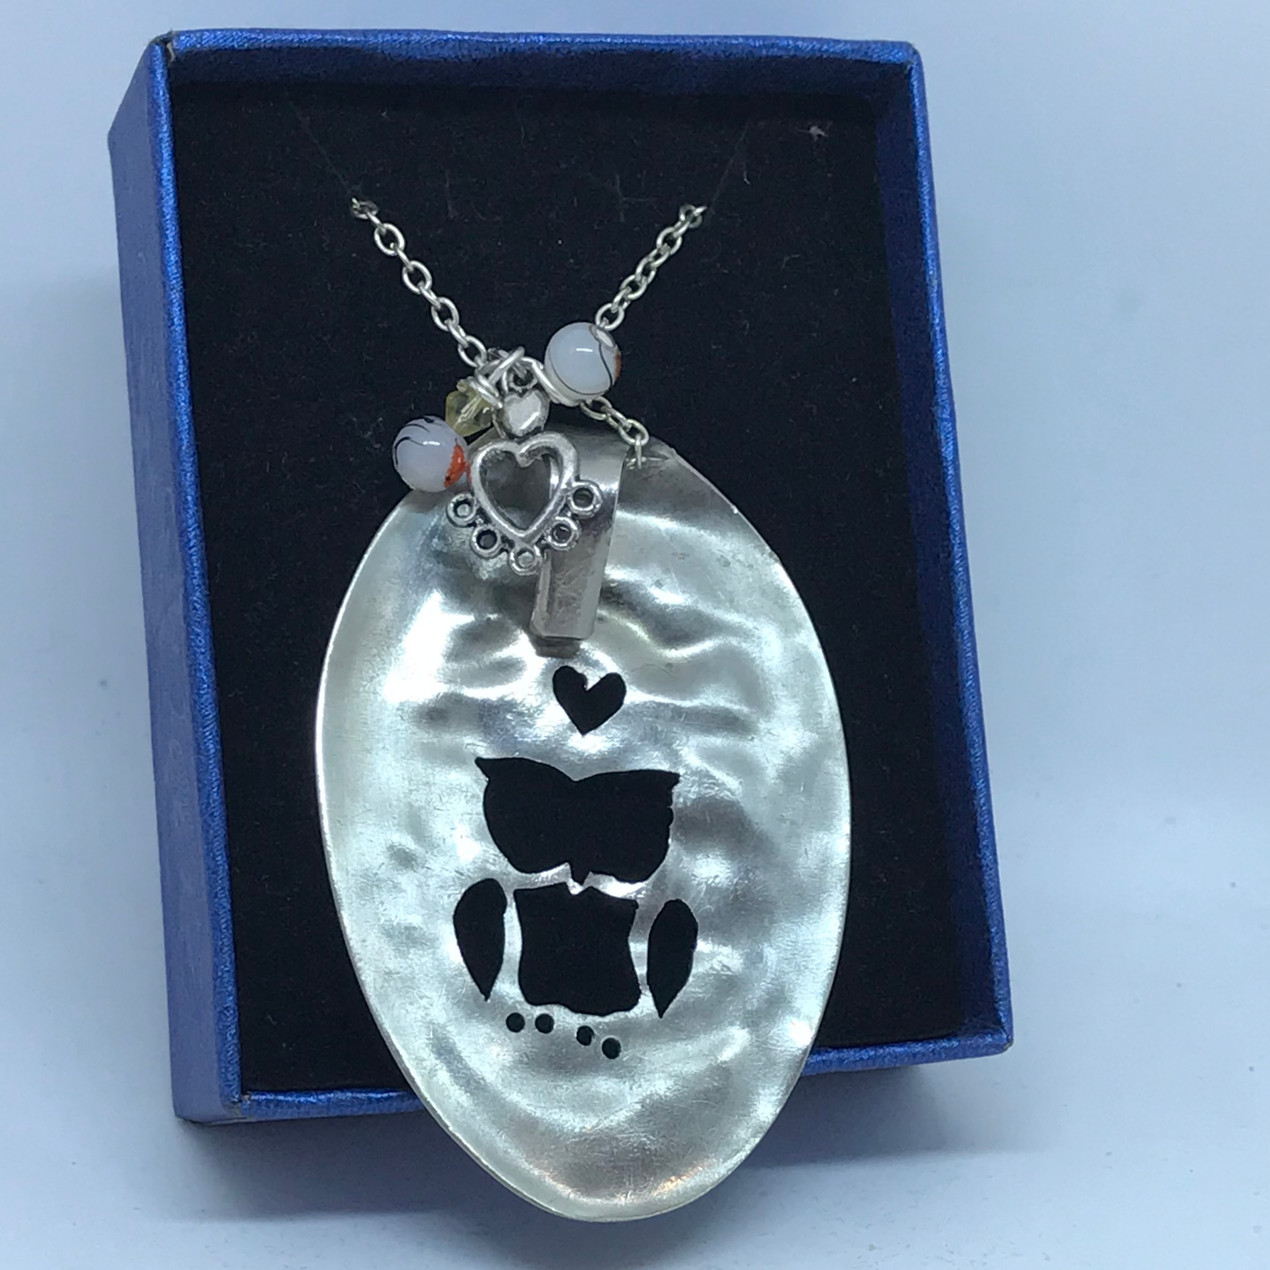 Owl necklace made from spoon